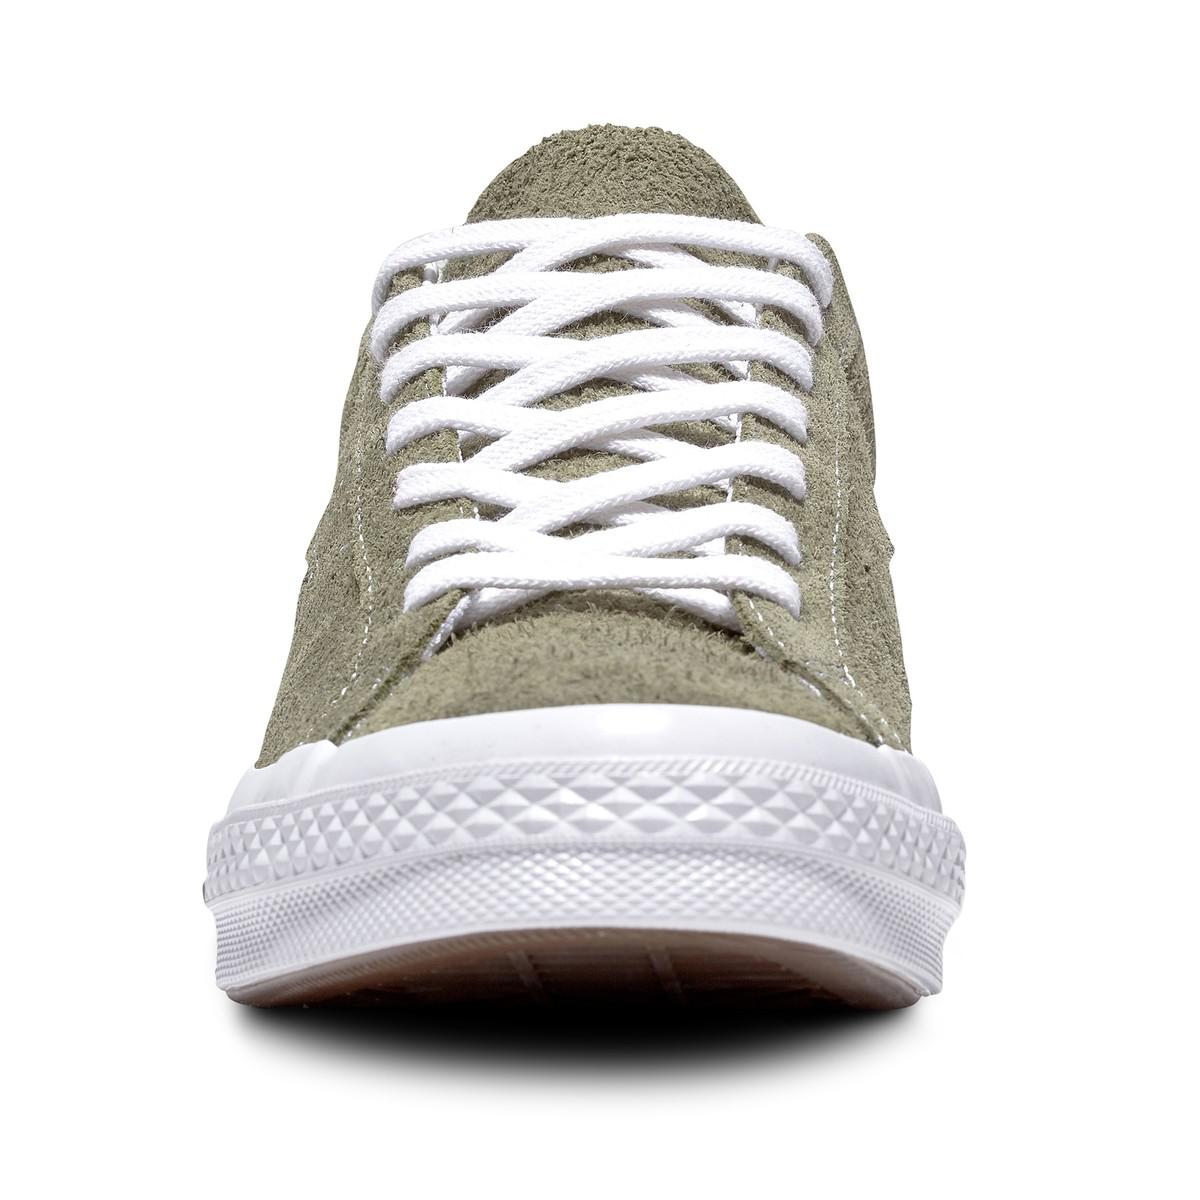 152f3c00853 Lyst - Converse One Star Leather Lace-up Trainers for Men